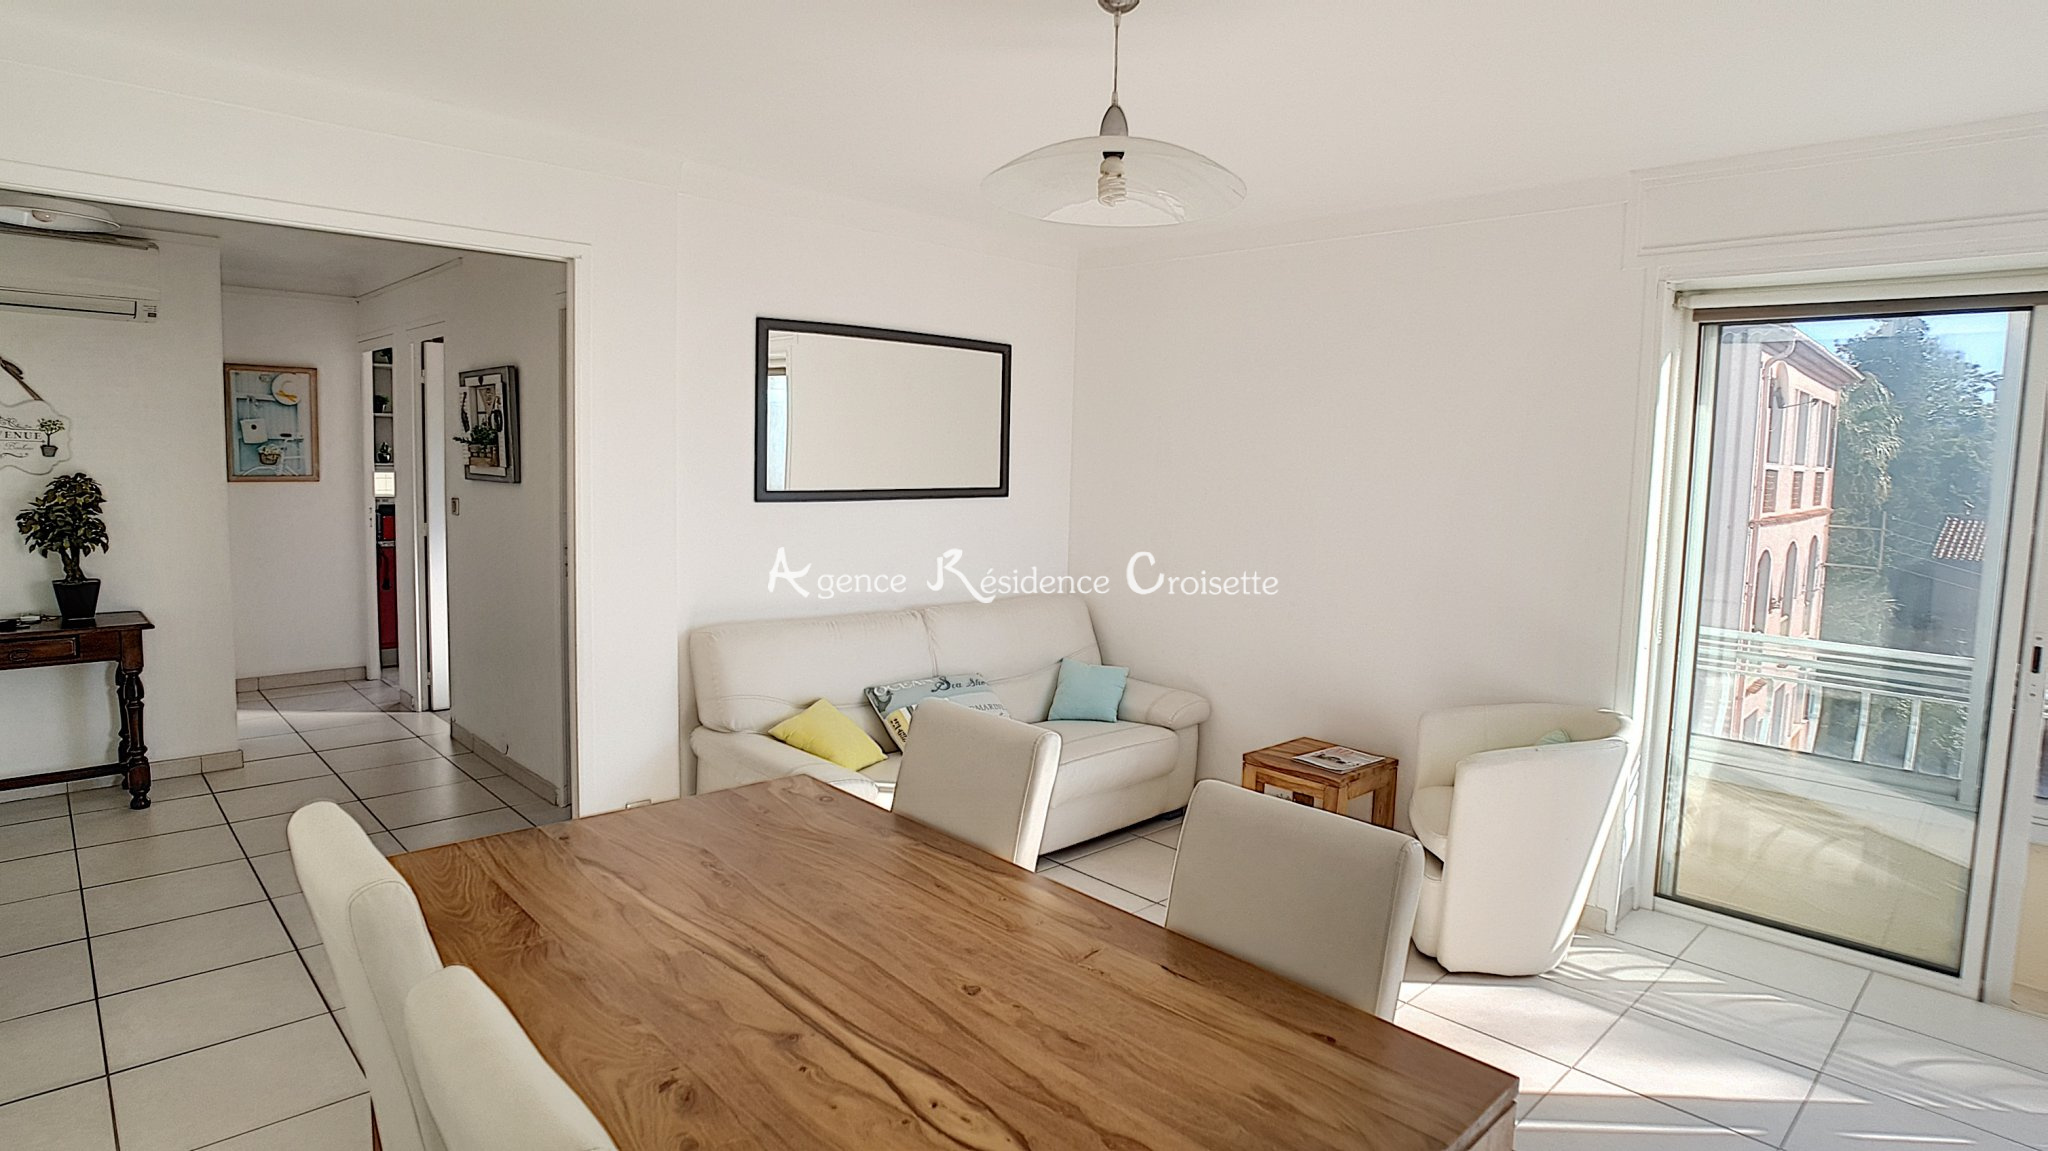 Buy 4 Rooms In Cannes With Residence Croisette